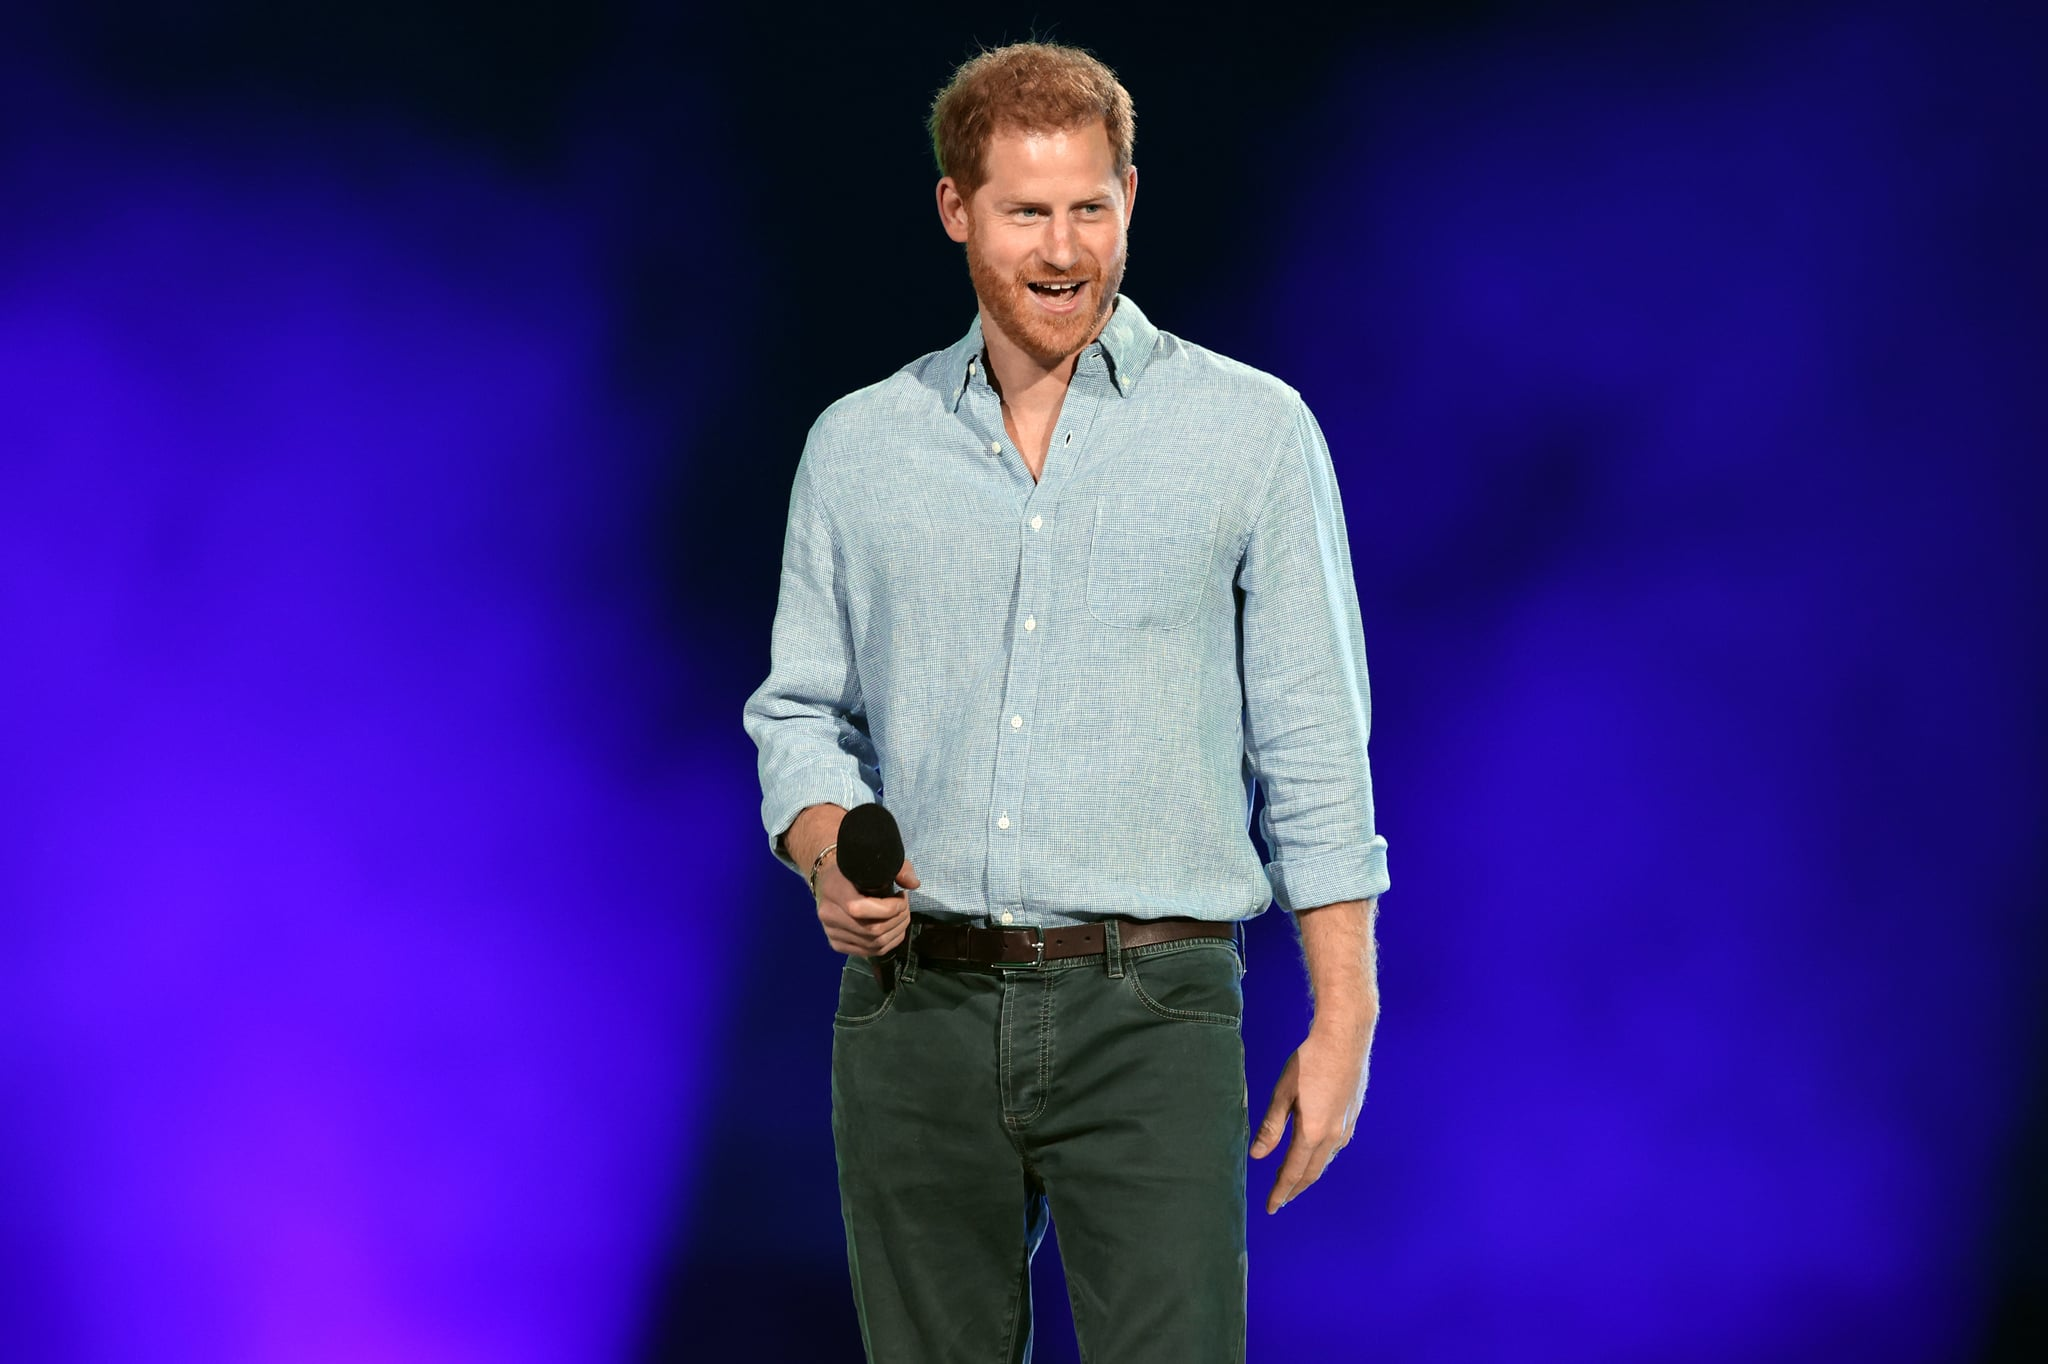 INGLEWOOD, CALIFORNIA: In this image released on May 2, Prince Harry, The Duke of Sussex, speaks onstage during Global Citizen VAX LIVE: The Concert To Reunite The World at SoFi Stadium in Inglewood, California. Global Citizen VAX LIVE: The Concert To Reunite The World will be broadcast on May 8, 2021. (Photo by Kevin Winter/Getty Images for Global Citizen VAX LIVE)